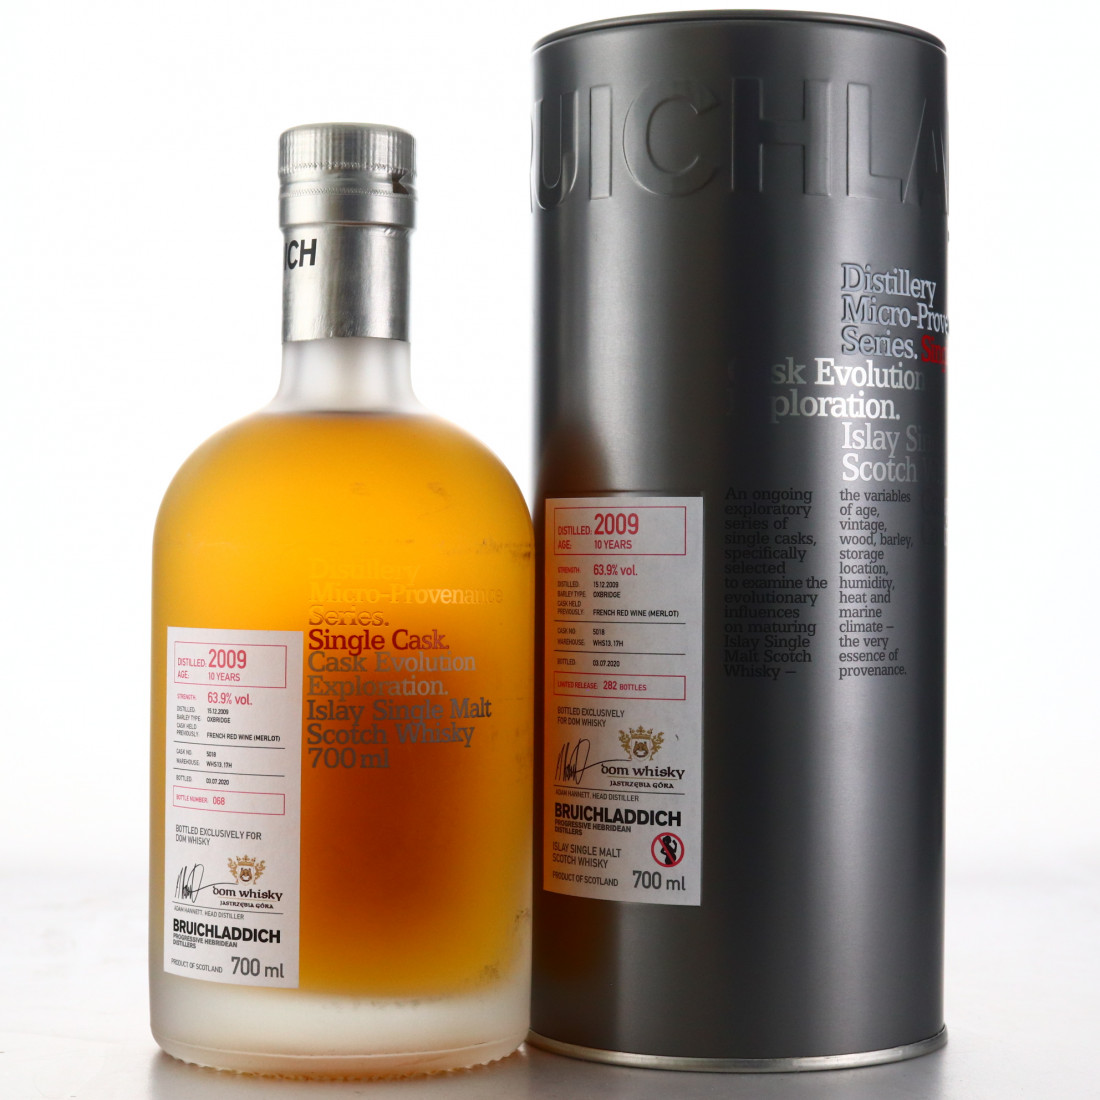 Bruichladdich 2009 Micro Provenance Single Merlot Cask 10 Year Old #5018 / Dom Whisky